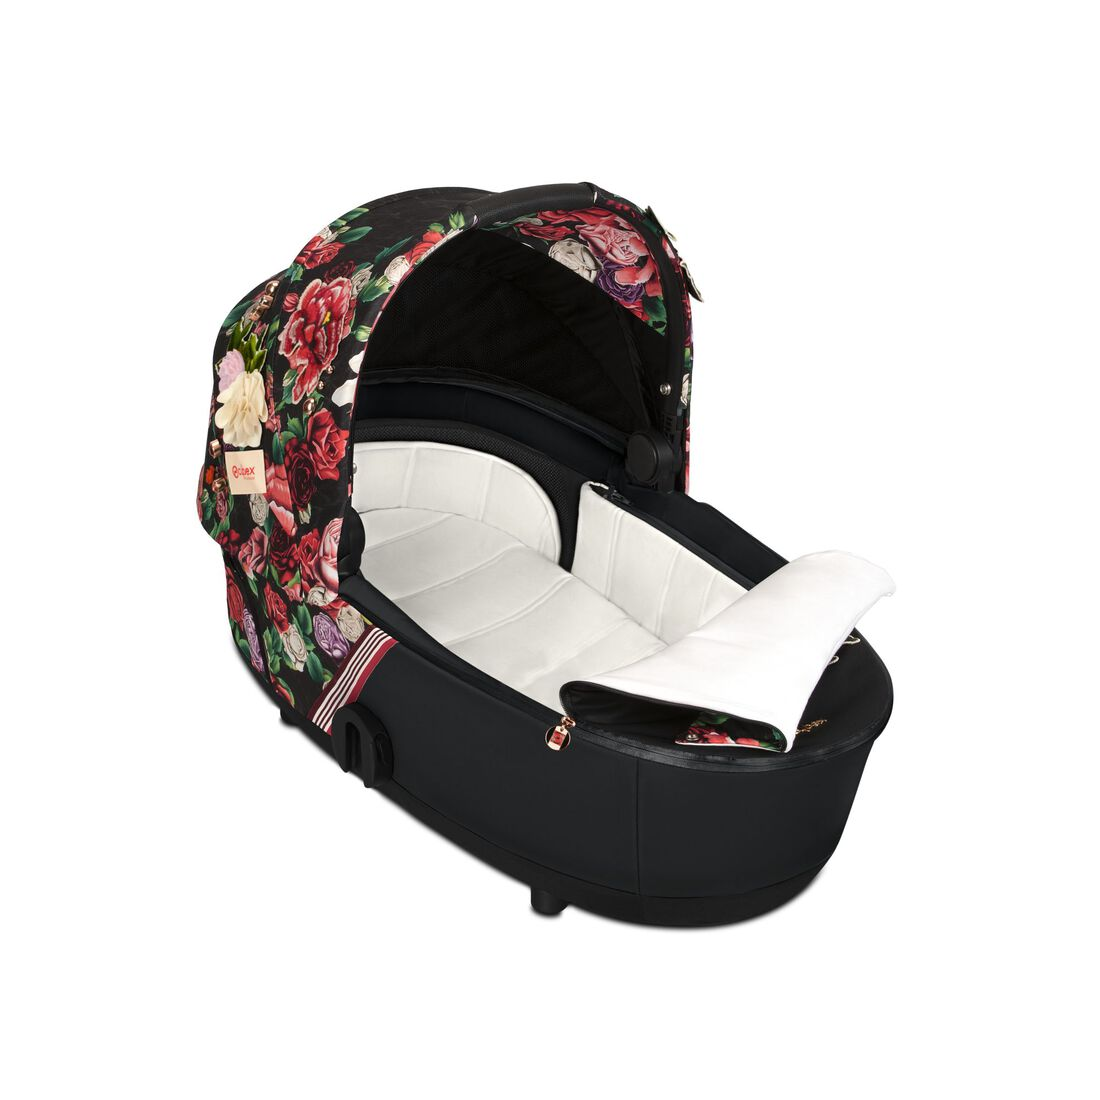 CYBEX Mios Lux Carry Cot - Spring Blossom Dark in Spring Blossom Dark large image number 2